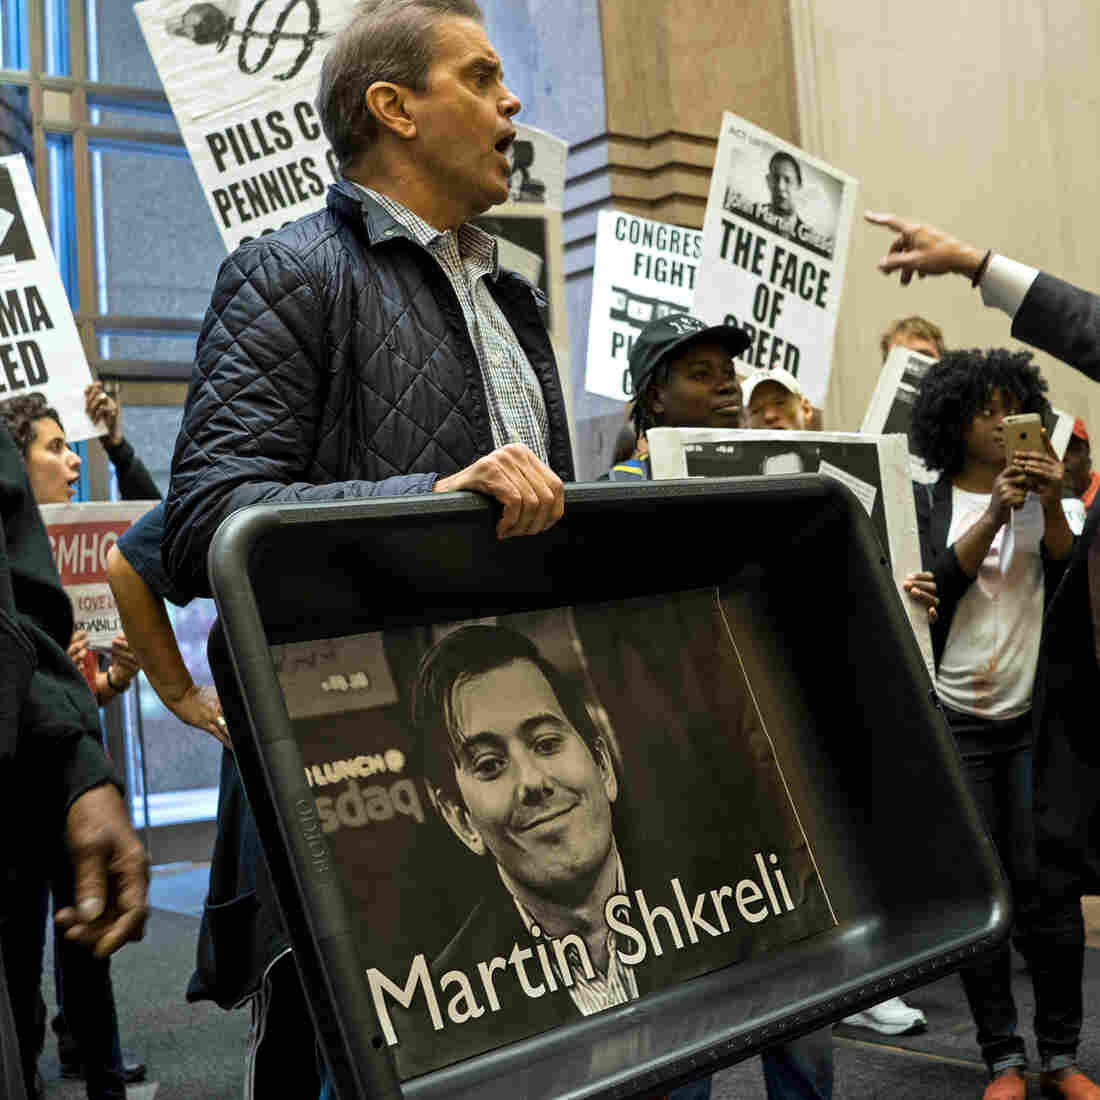 FBI Arrests Turing Pharmaceuticals CEO Martin Shkreli On Fraud Charges